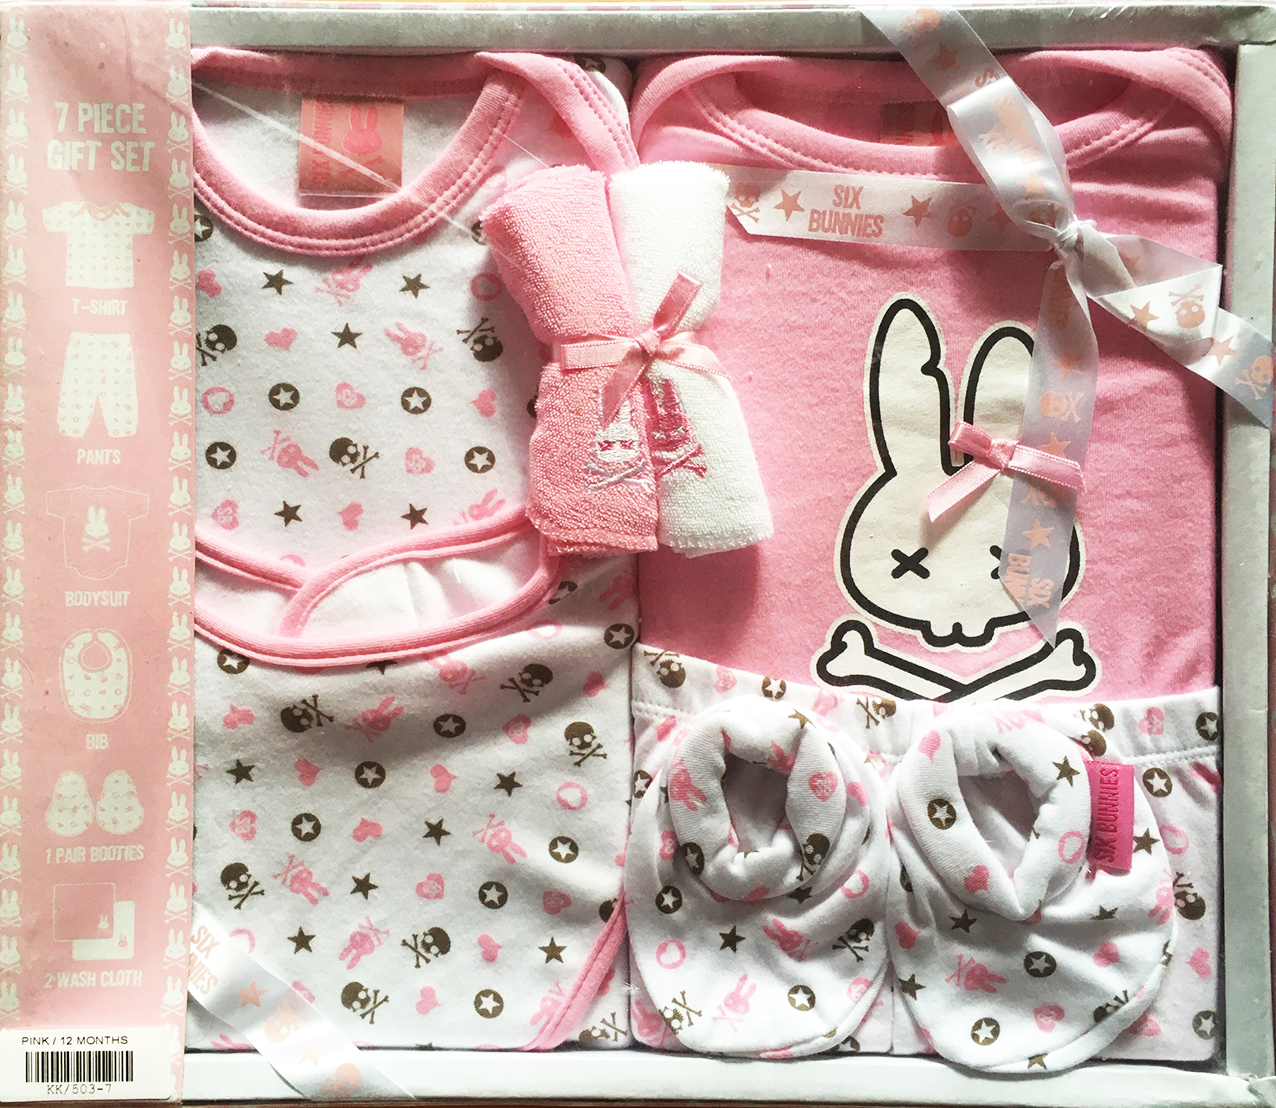 PINK CHAOS BUNNIES SET